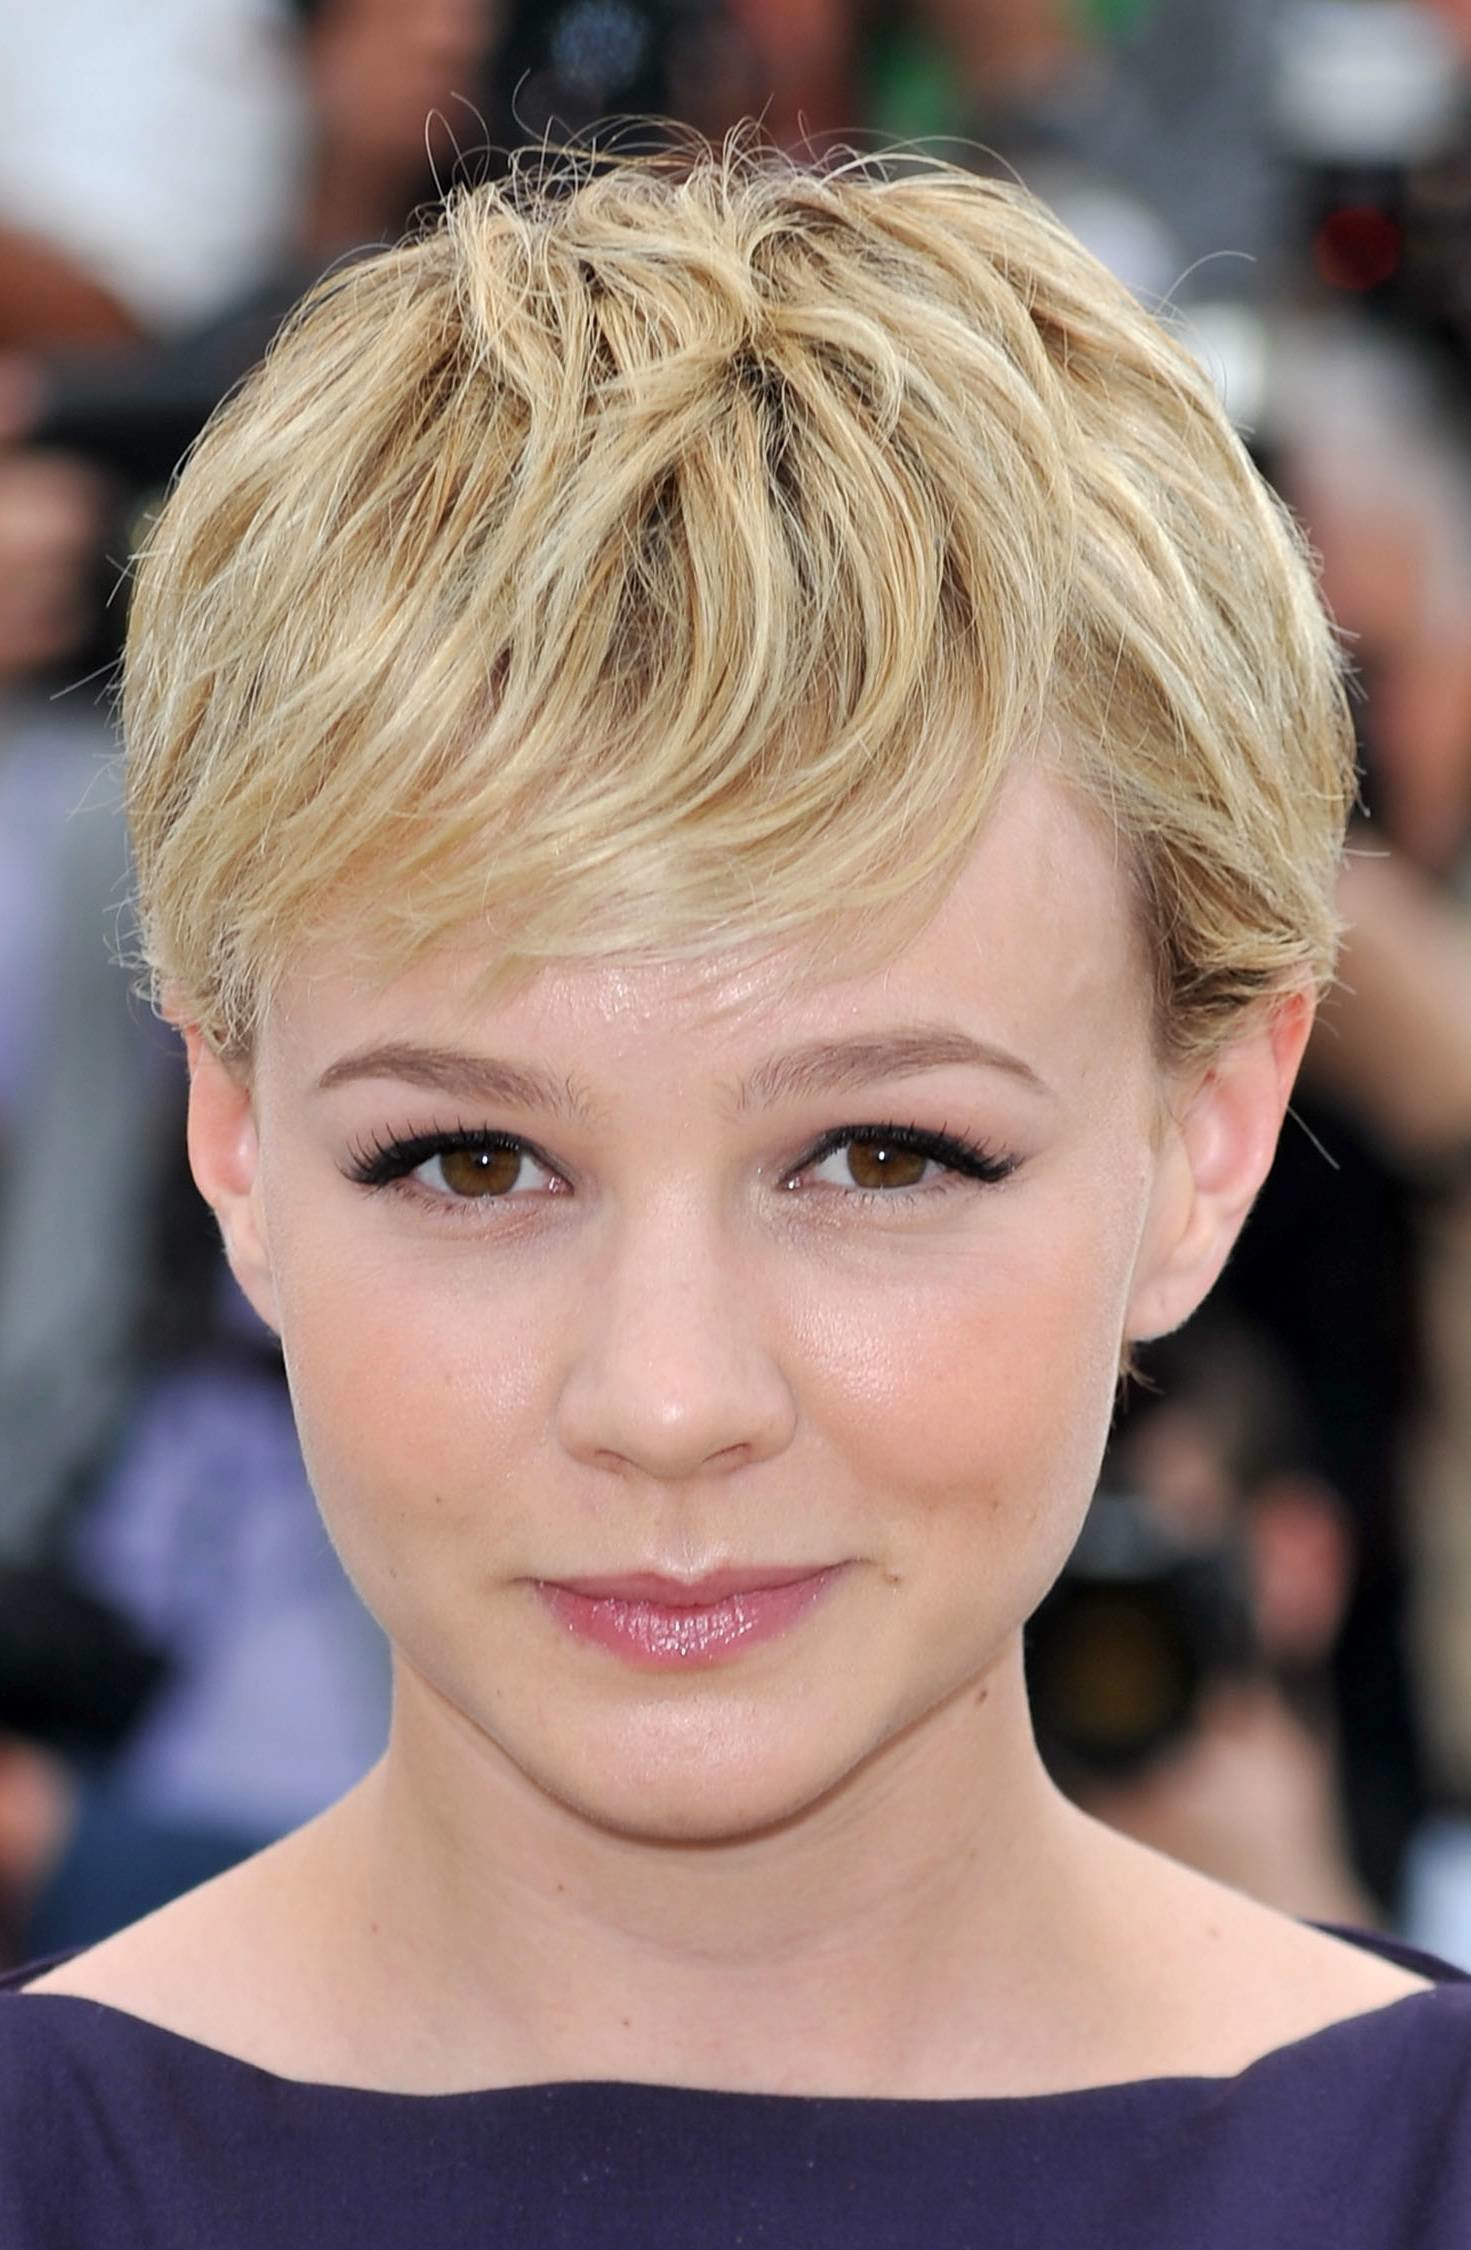 New Coupe Pixie Coupe Des Stars En 2014 Trend Zone Ideas With Pictures